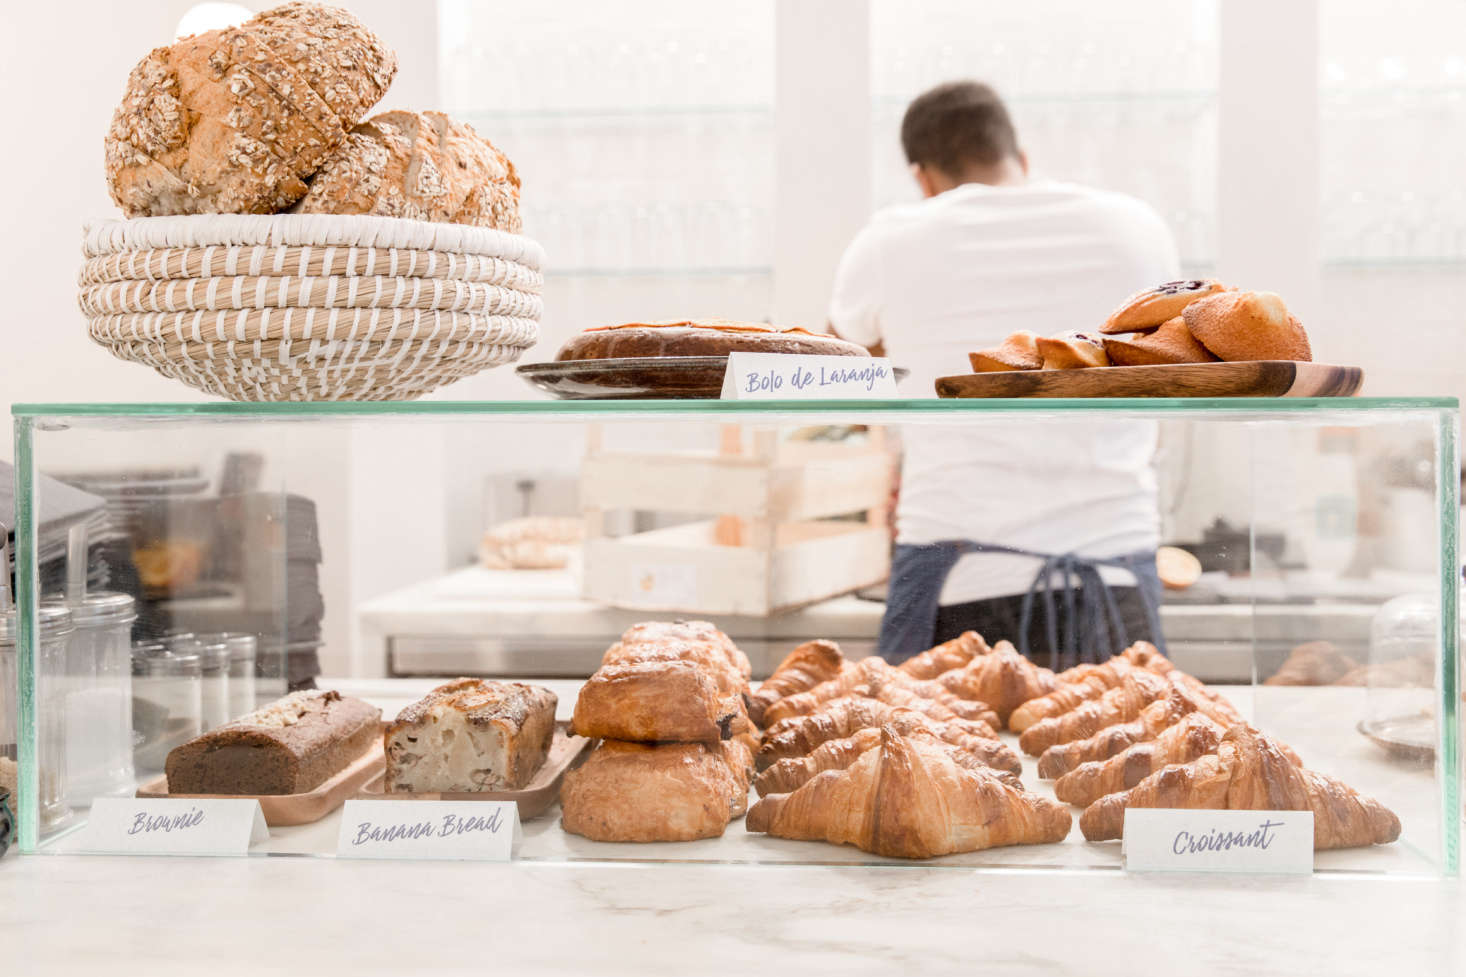 A glass case displays the day's pastries.